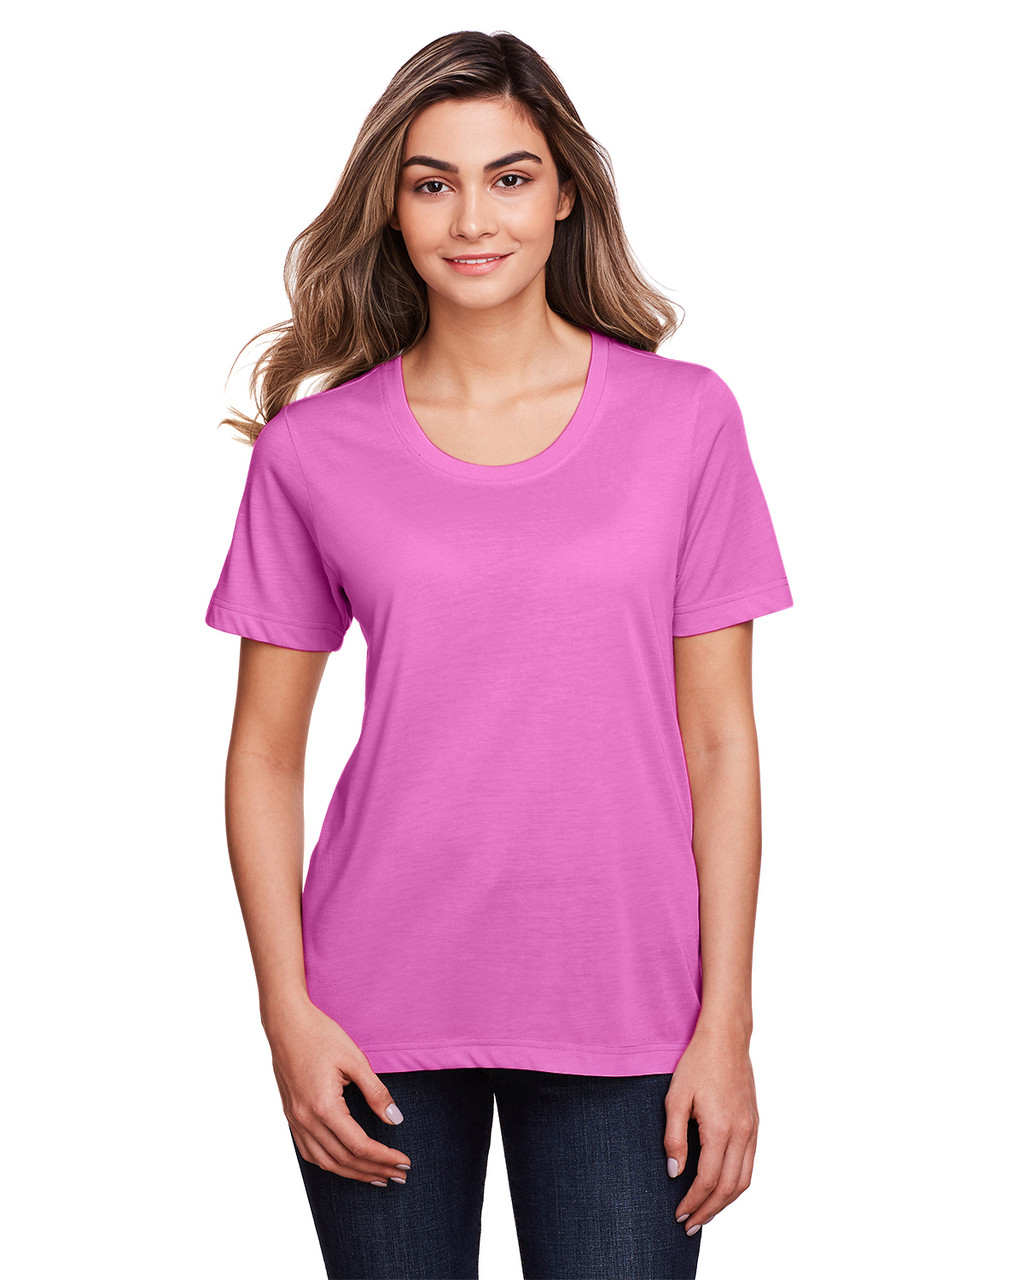 Charity Pink - CE111W Core 365 Ladies' Fusion ChromaSoft™ Performance T-Shirt | BlankClothing.ca